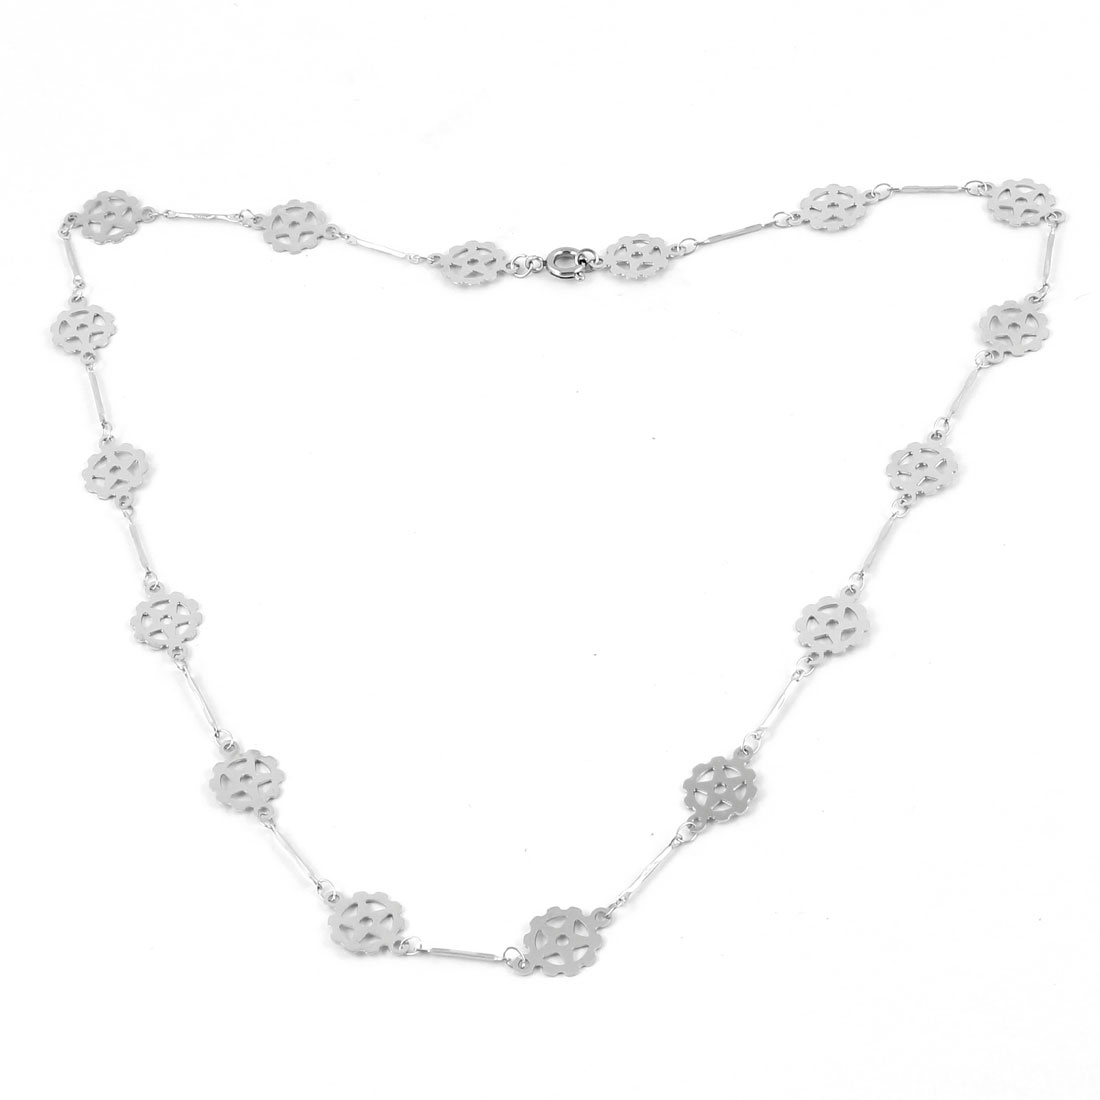 Silver Tone Stainless Steel Flower Design Chain Lobster Closure Necklace